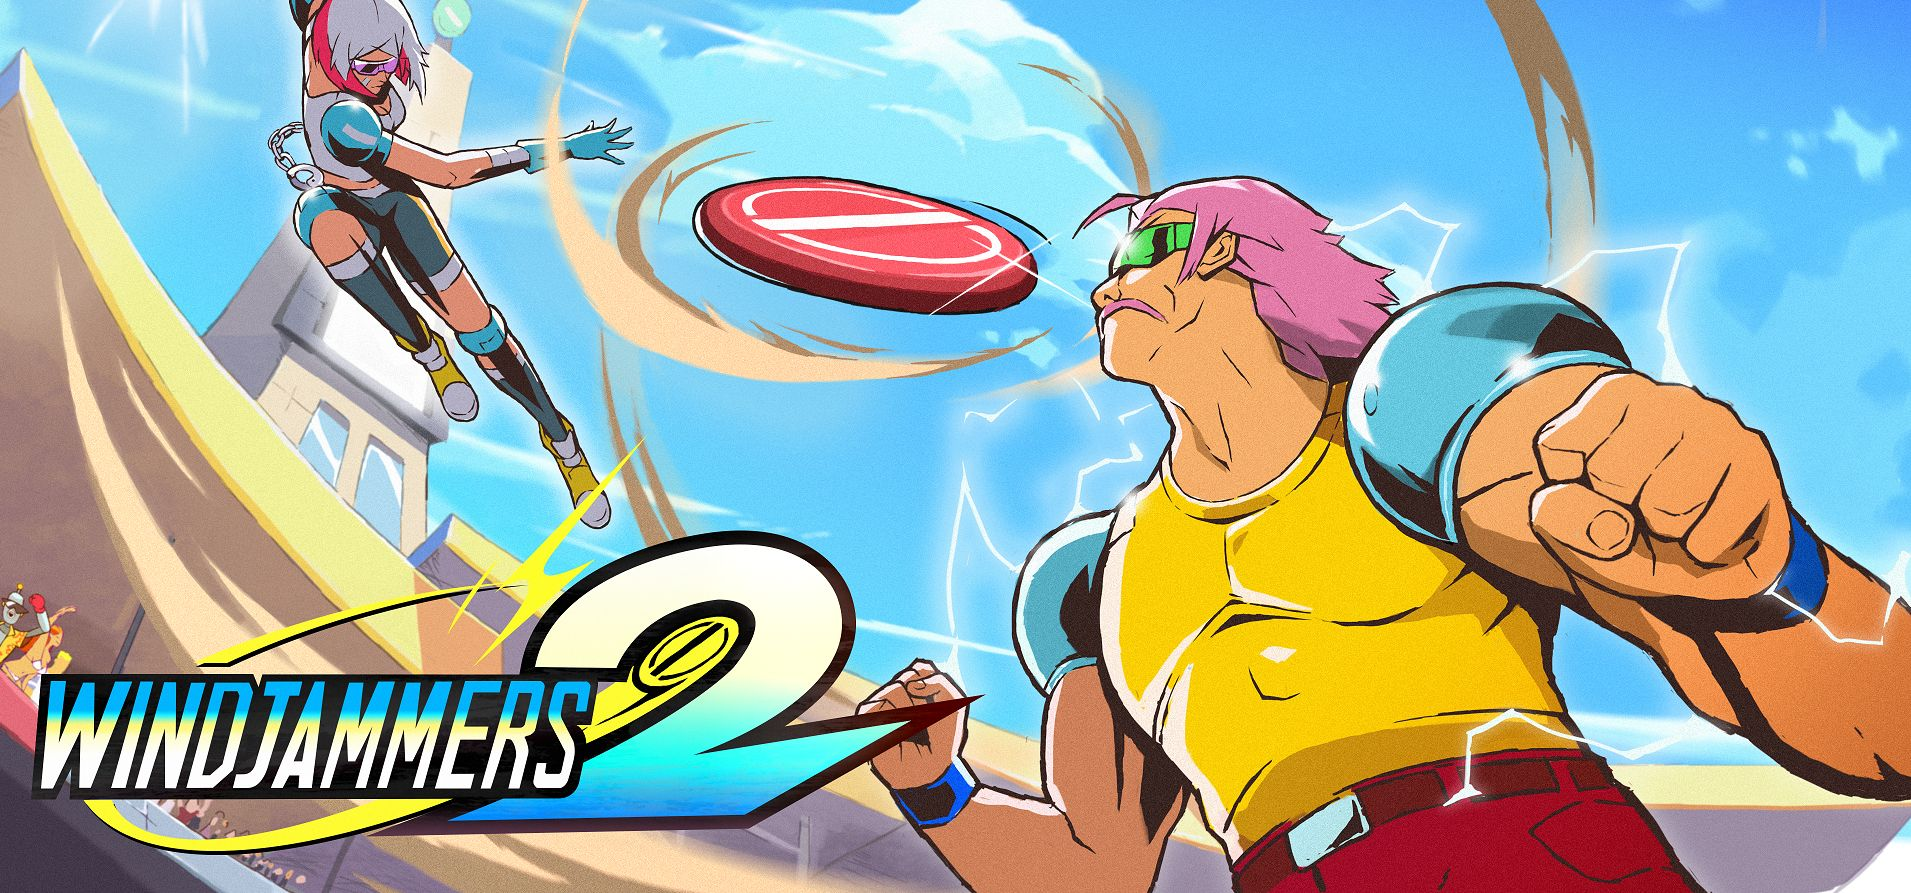 Windjammers 2 announced as Nintendo Switch console exclusive